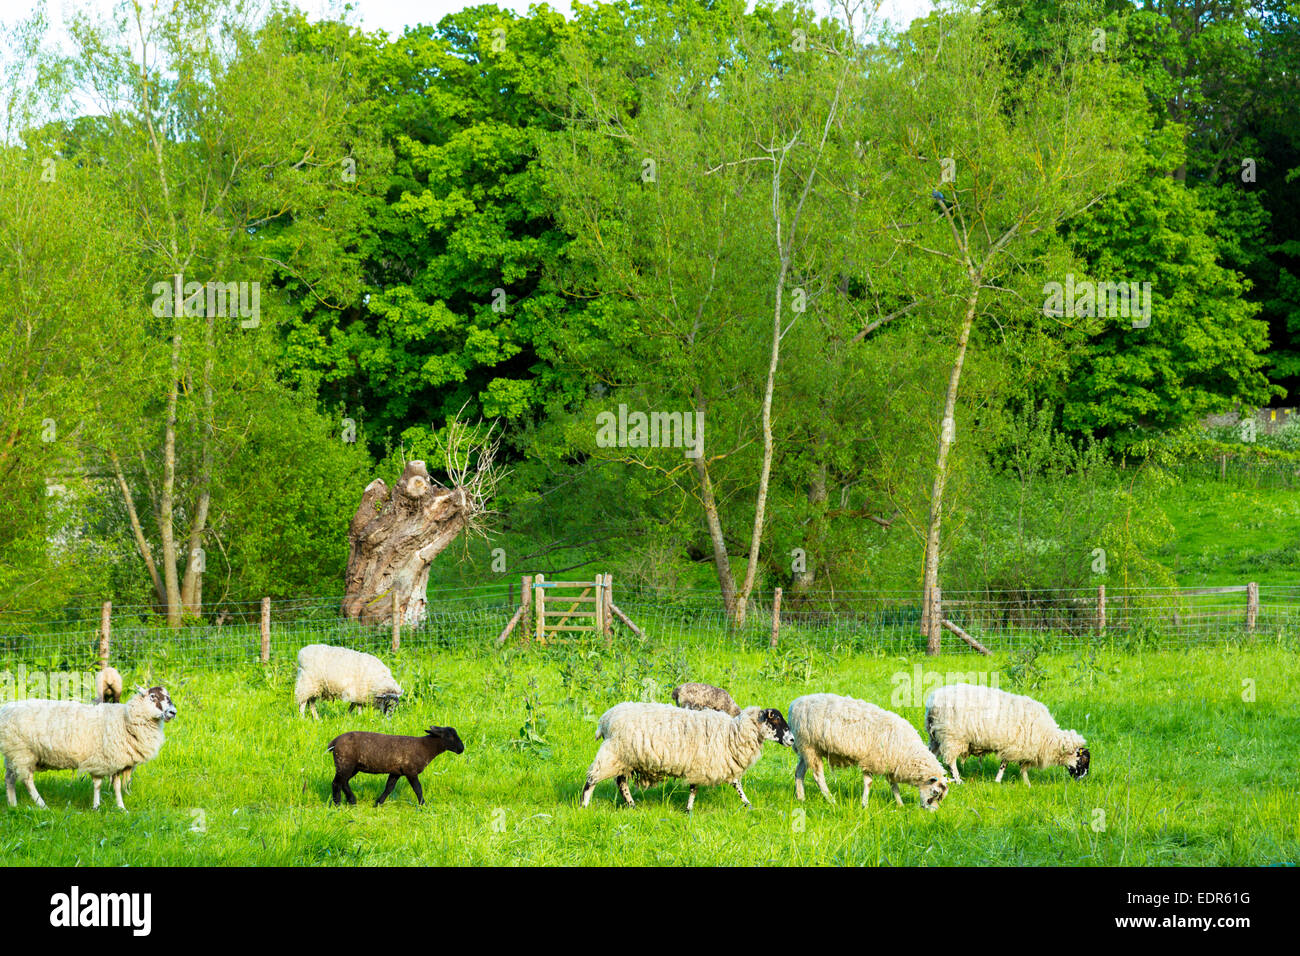 One black sheep among flock of white sheep in meadow in Eastleach Martin in The Cotswolds, UK - Stock Image